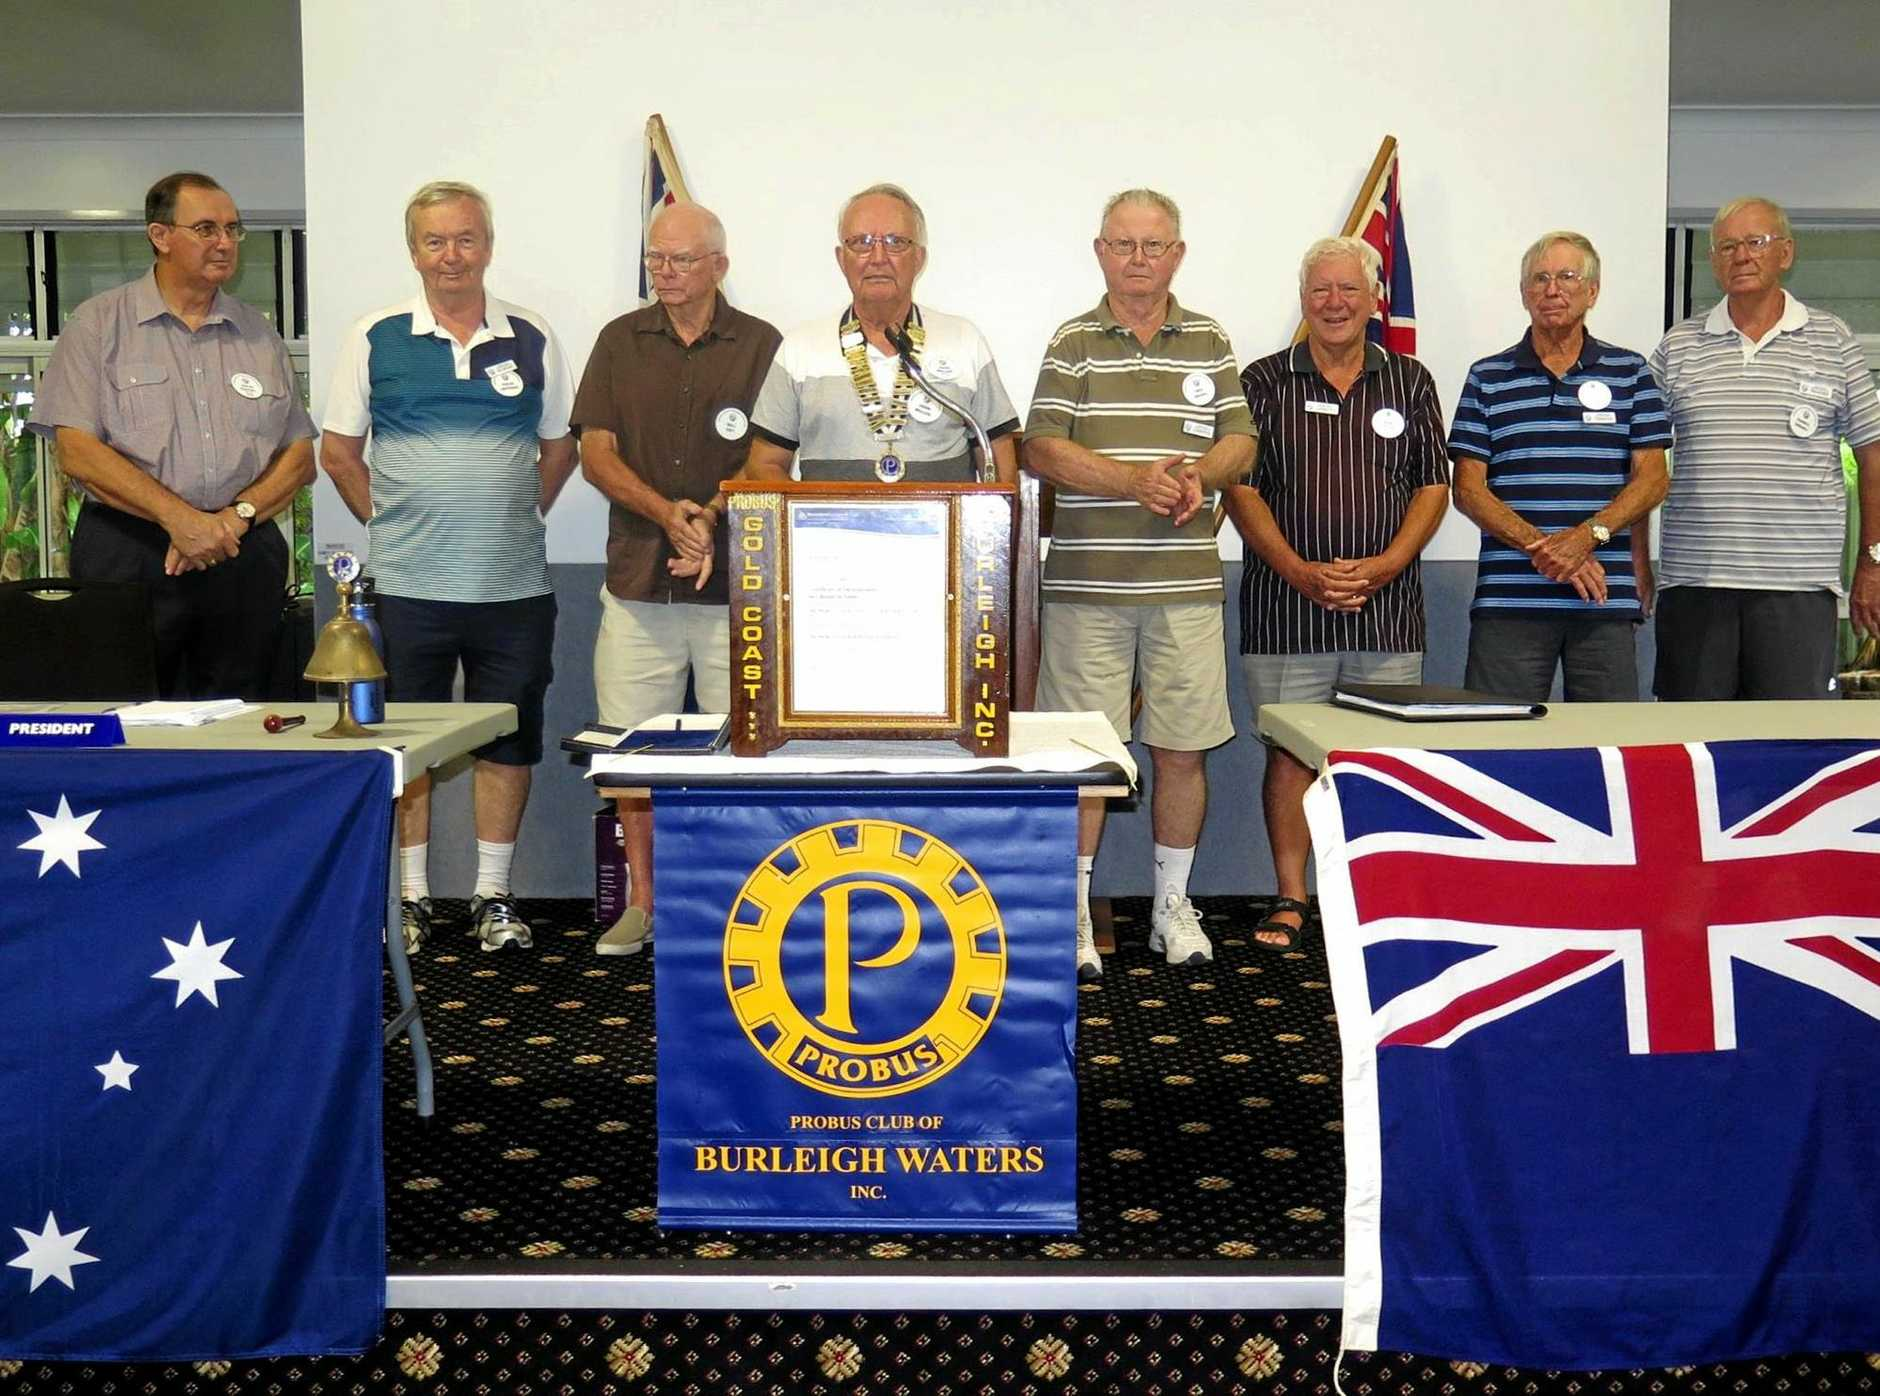 The Burleigh Waters Probus Management Committee for 2017/18.